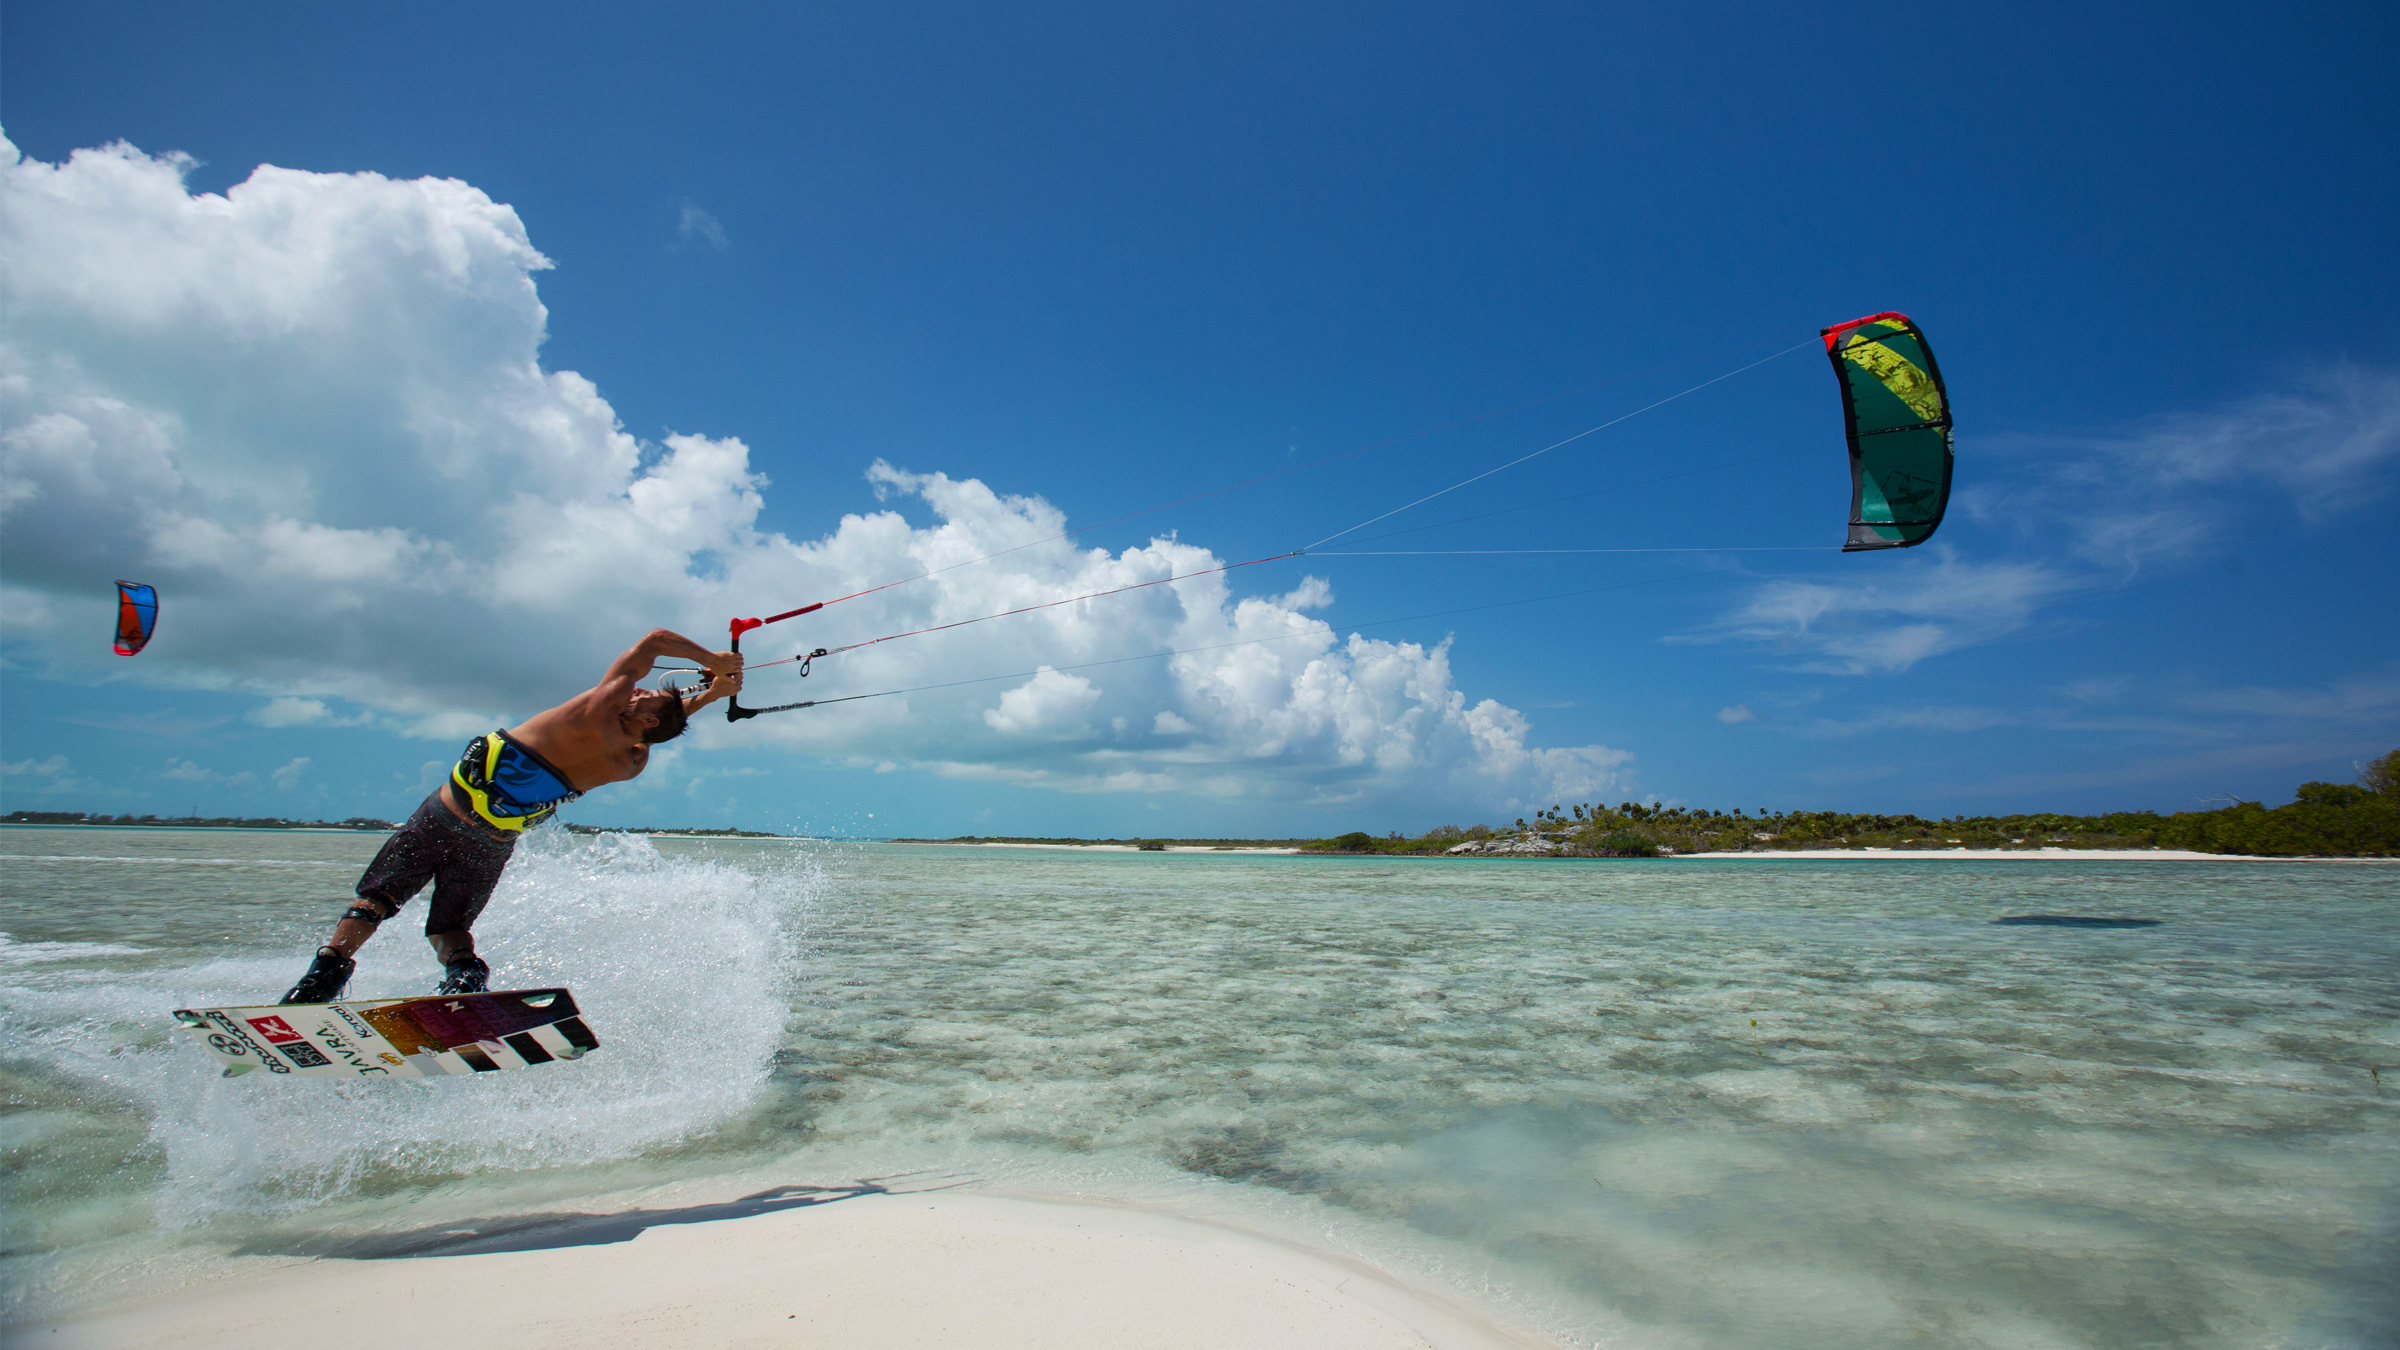 kitesurf wallpaper image - Kiteboarder Youri Zoon popping a jump over a tropical sandbar on his Best Kiteboarding gear. - in resolution: High Definition - HD 16:9 2400 X 1350